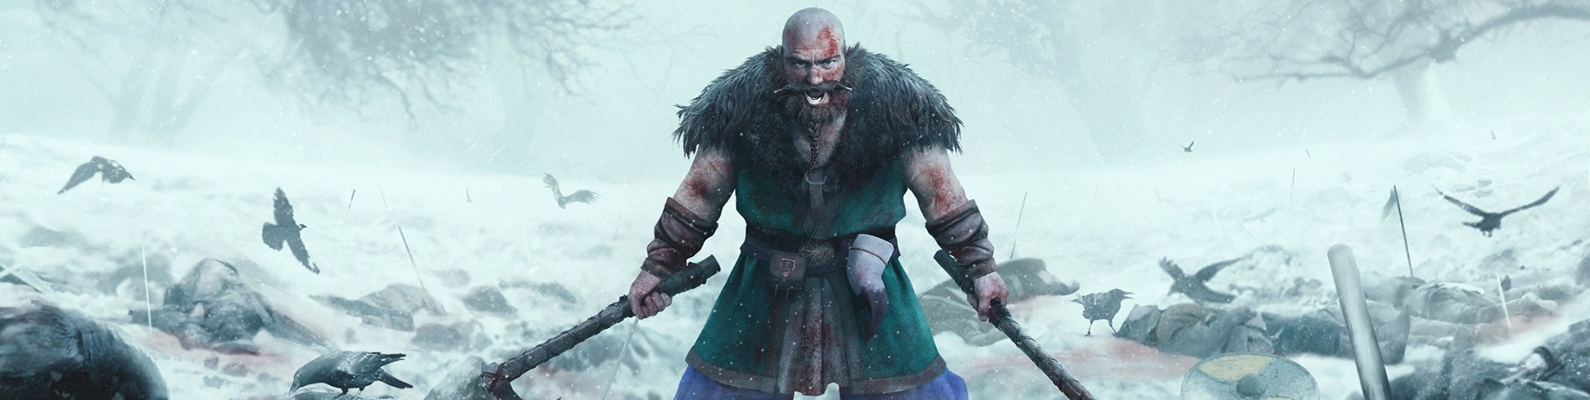 fury, strong, crow, blade, berserk, man, axe, ice, war, viking, death, blood, Expeditions Viking, ken, sword, dead, powerful, angry, snow